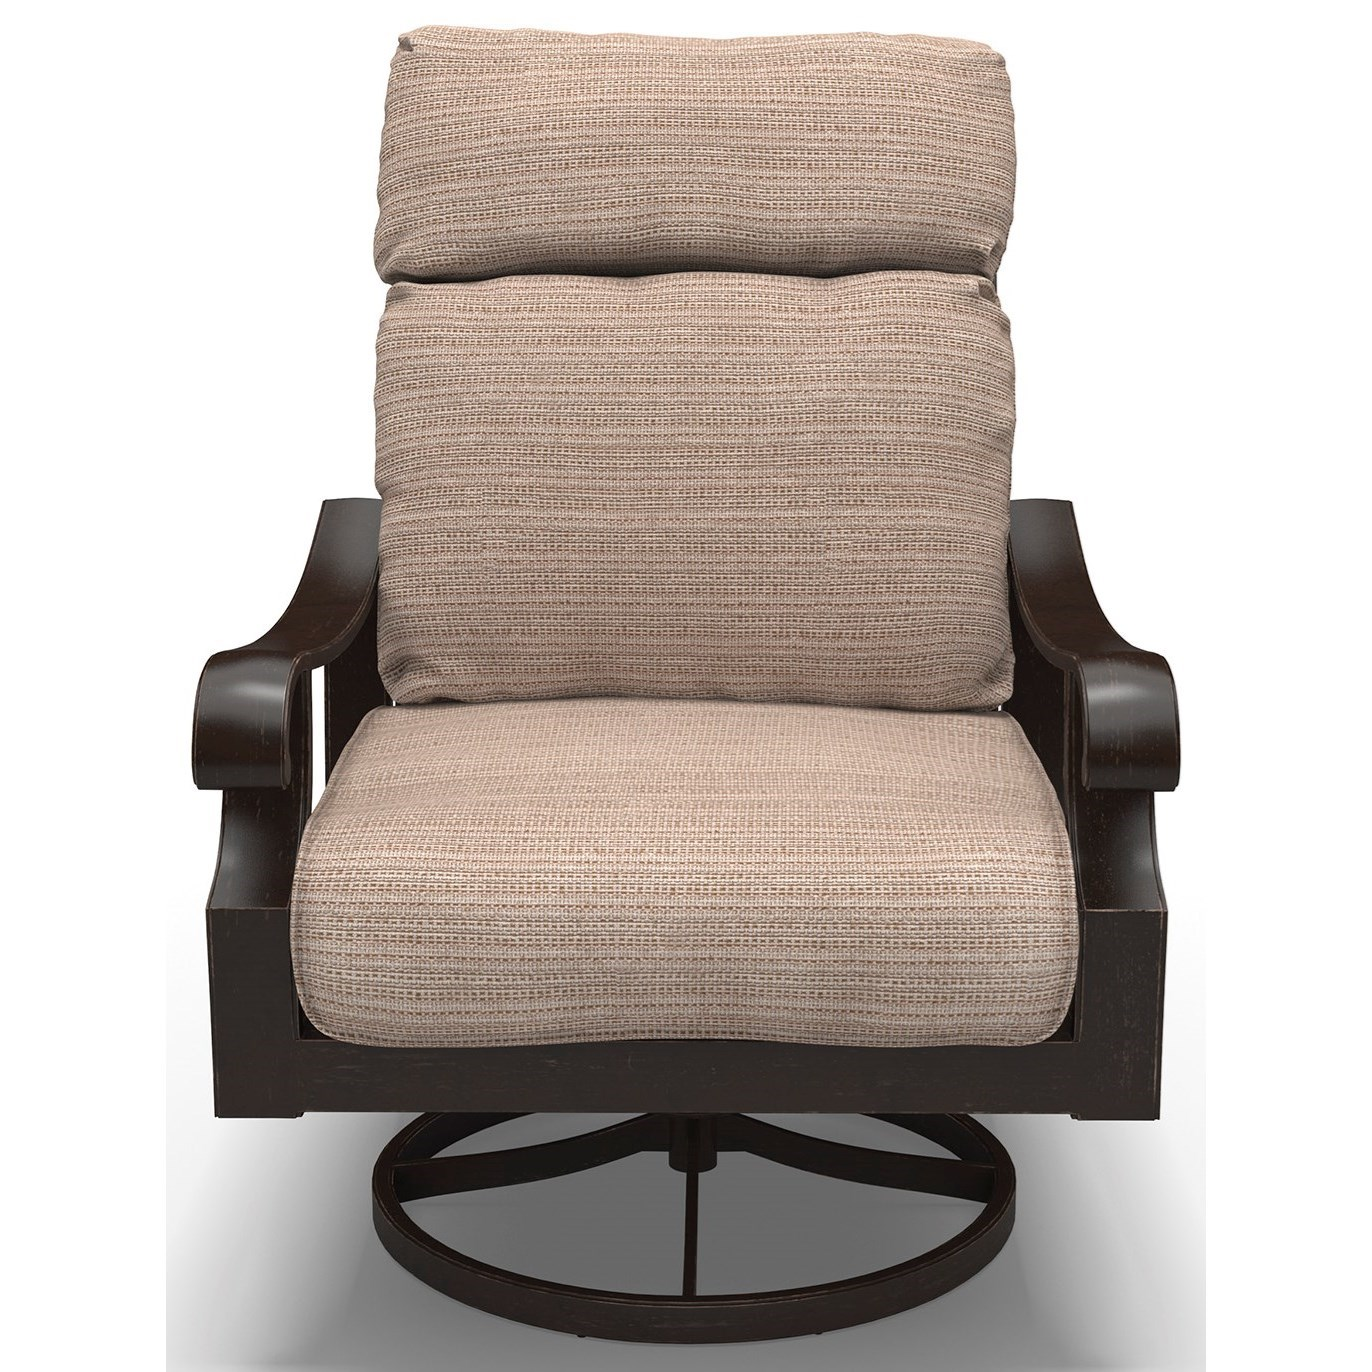 Signature Design by Ashley Chestnut Ridge Set of 2 Swivel Lounge Chairs with Cushion - Item Number: P445-821